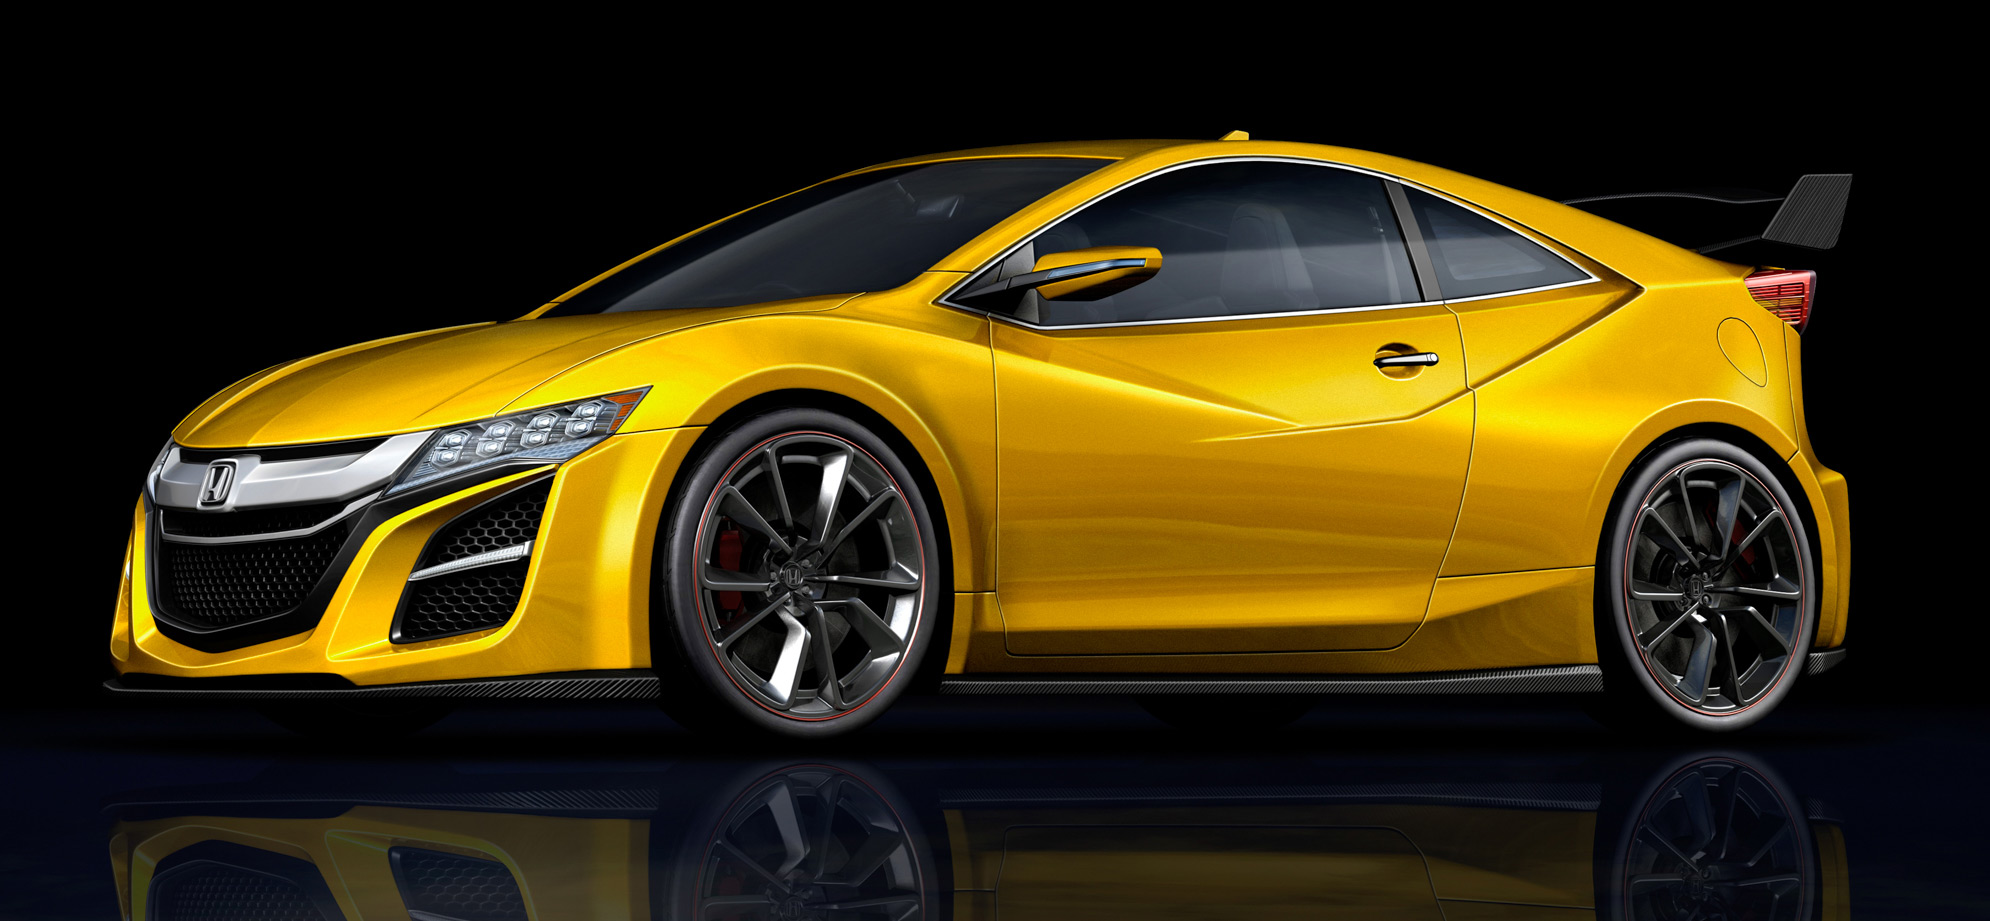 next generation honda cr z may ditch hybrid in favor of 2 0l turbo. Black Bedroom Furniture Sets. Home Design Ideas